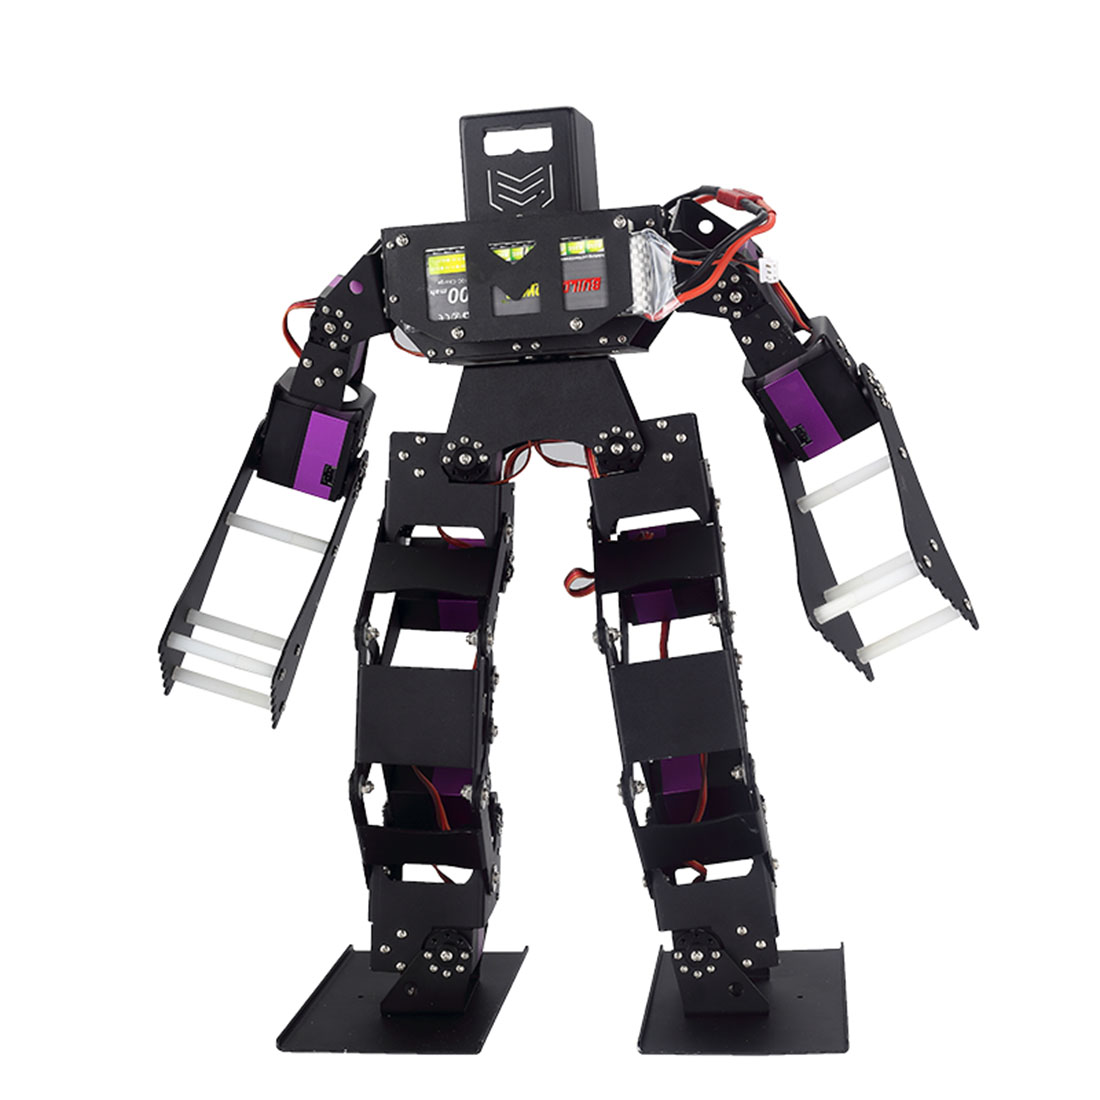 Programmable Biped Robot Boxing Competition Robot High Tech Toy DIY Stem Robot Compatible with Arduino / Microbit / STM32 / 51 1